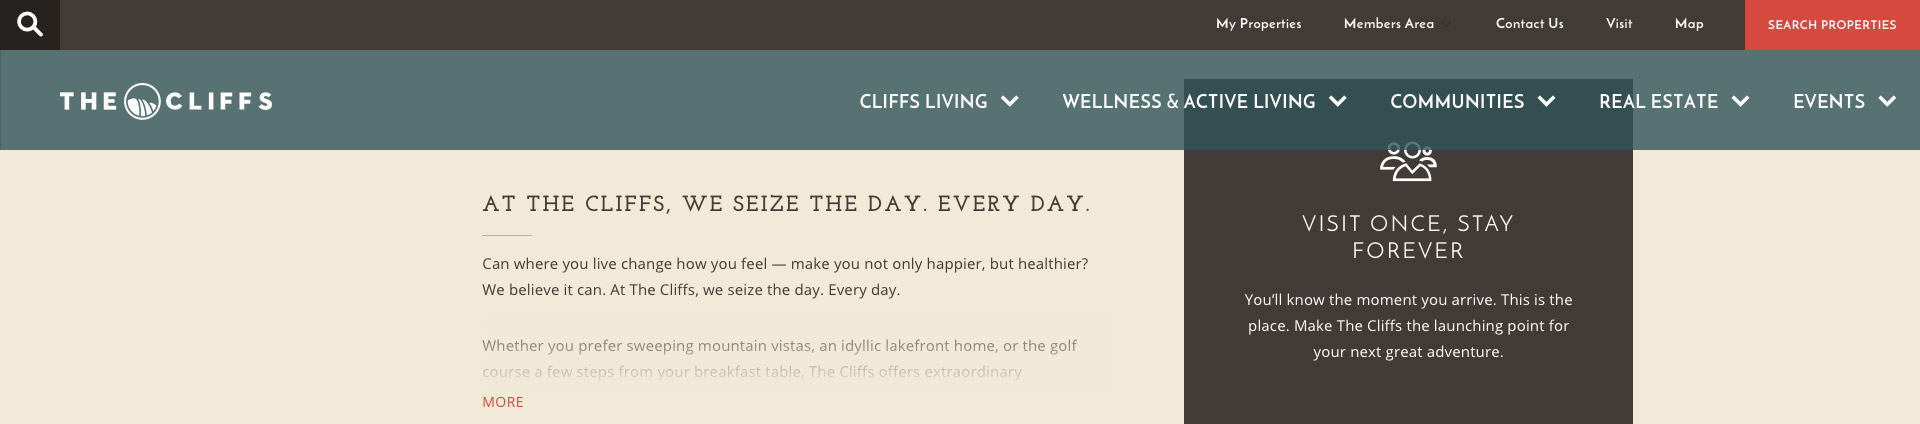 Example of a sticky menu in www.cliffsliving.com